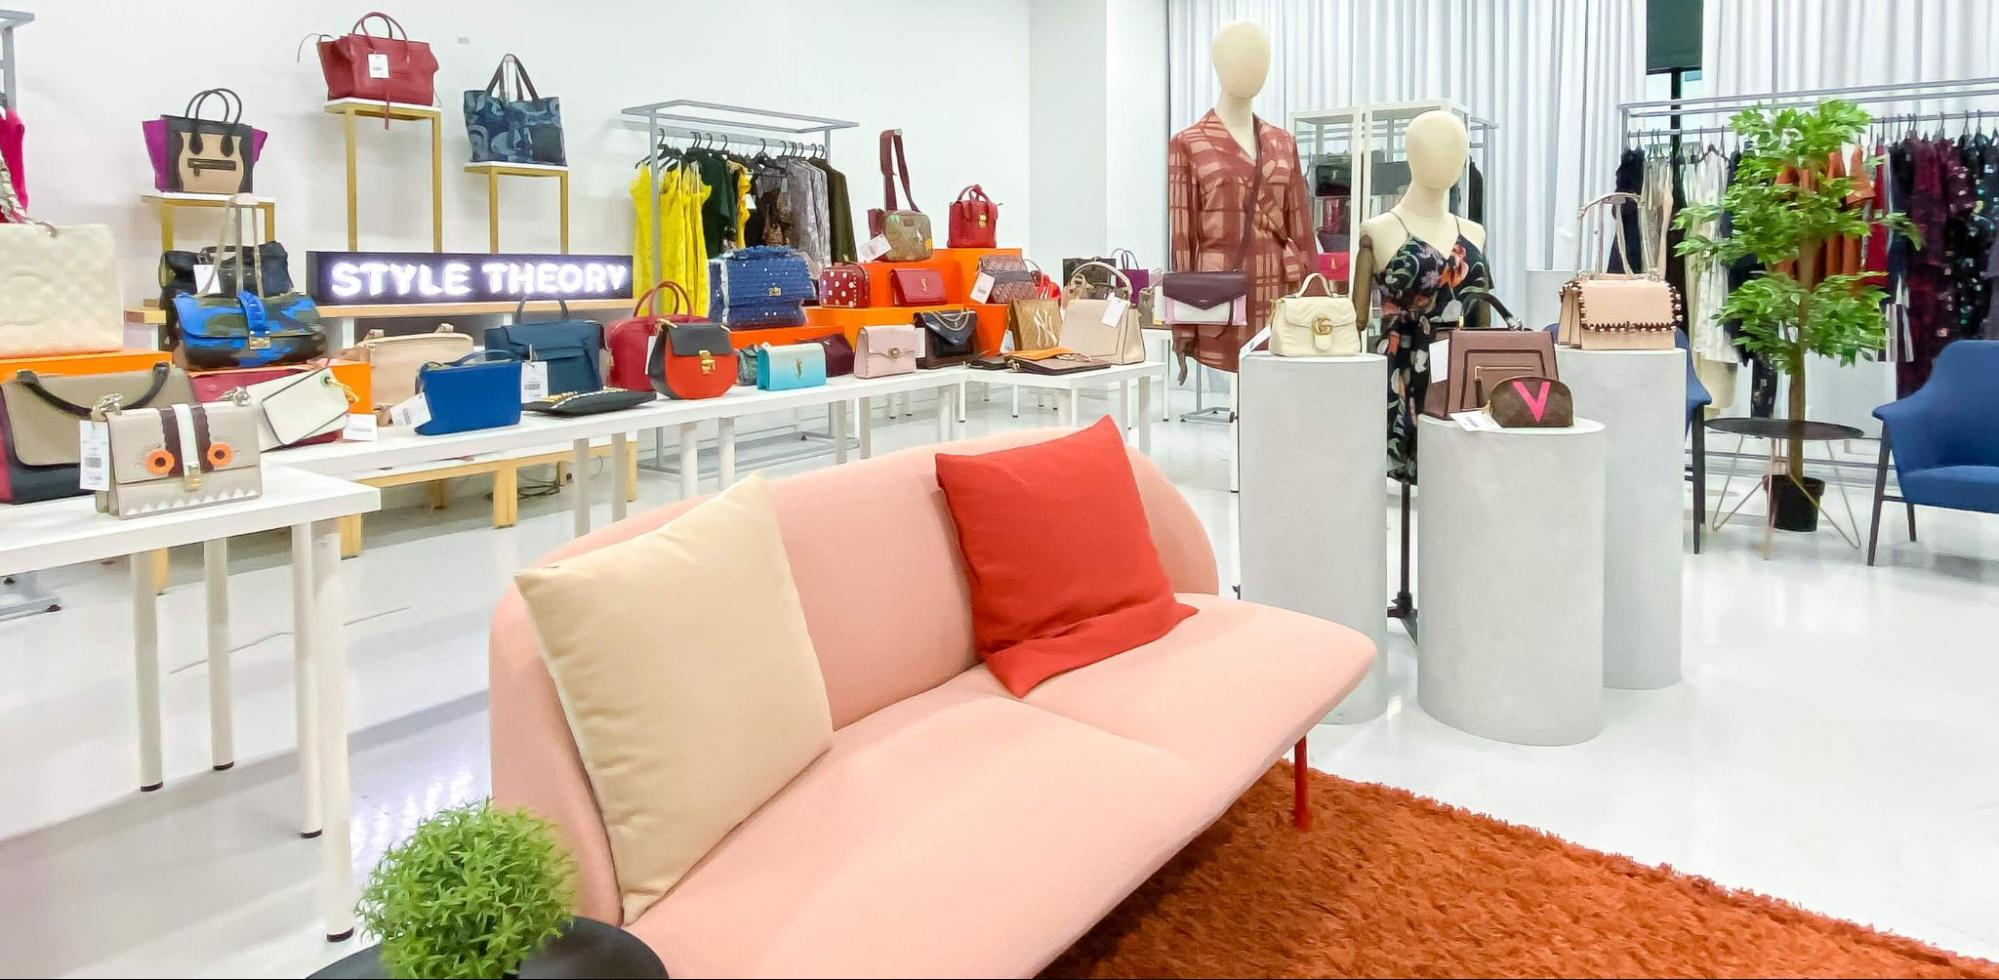 style theory store